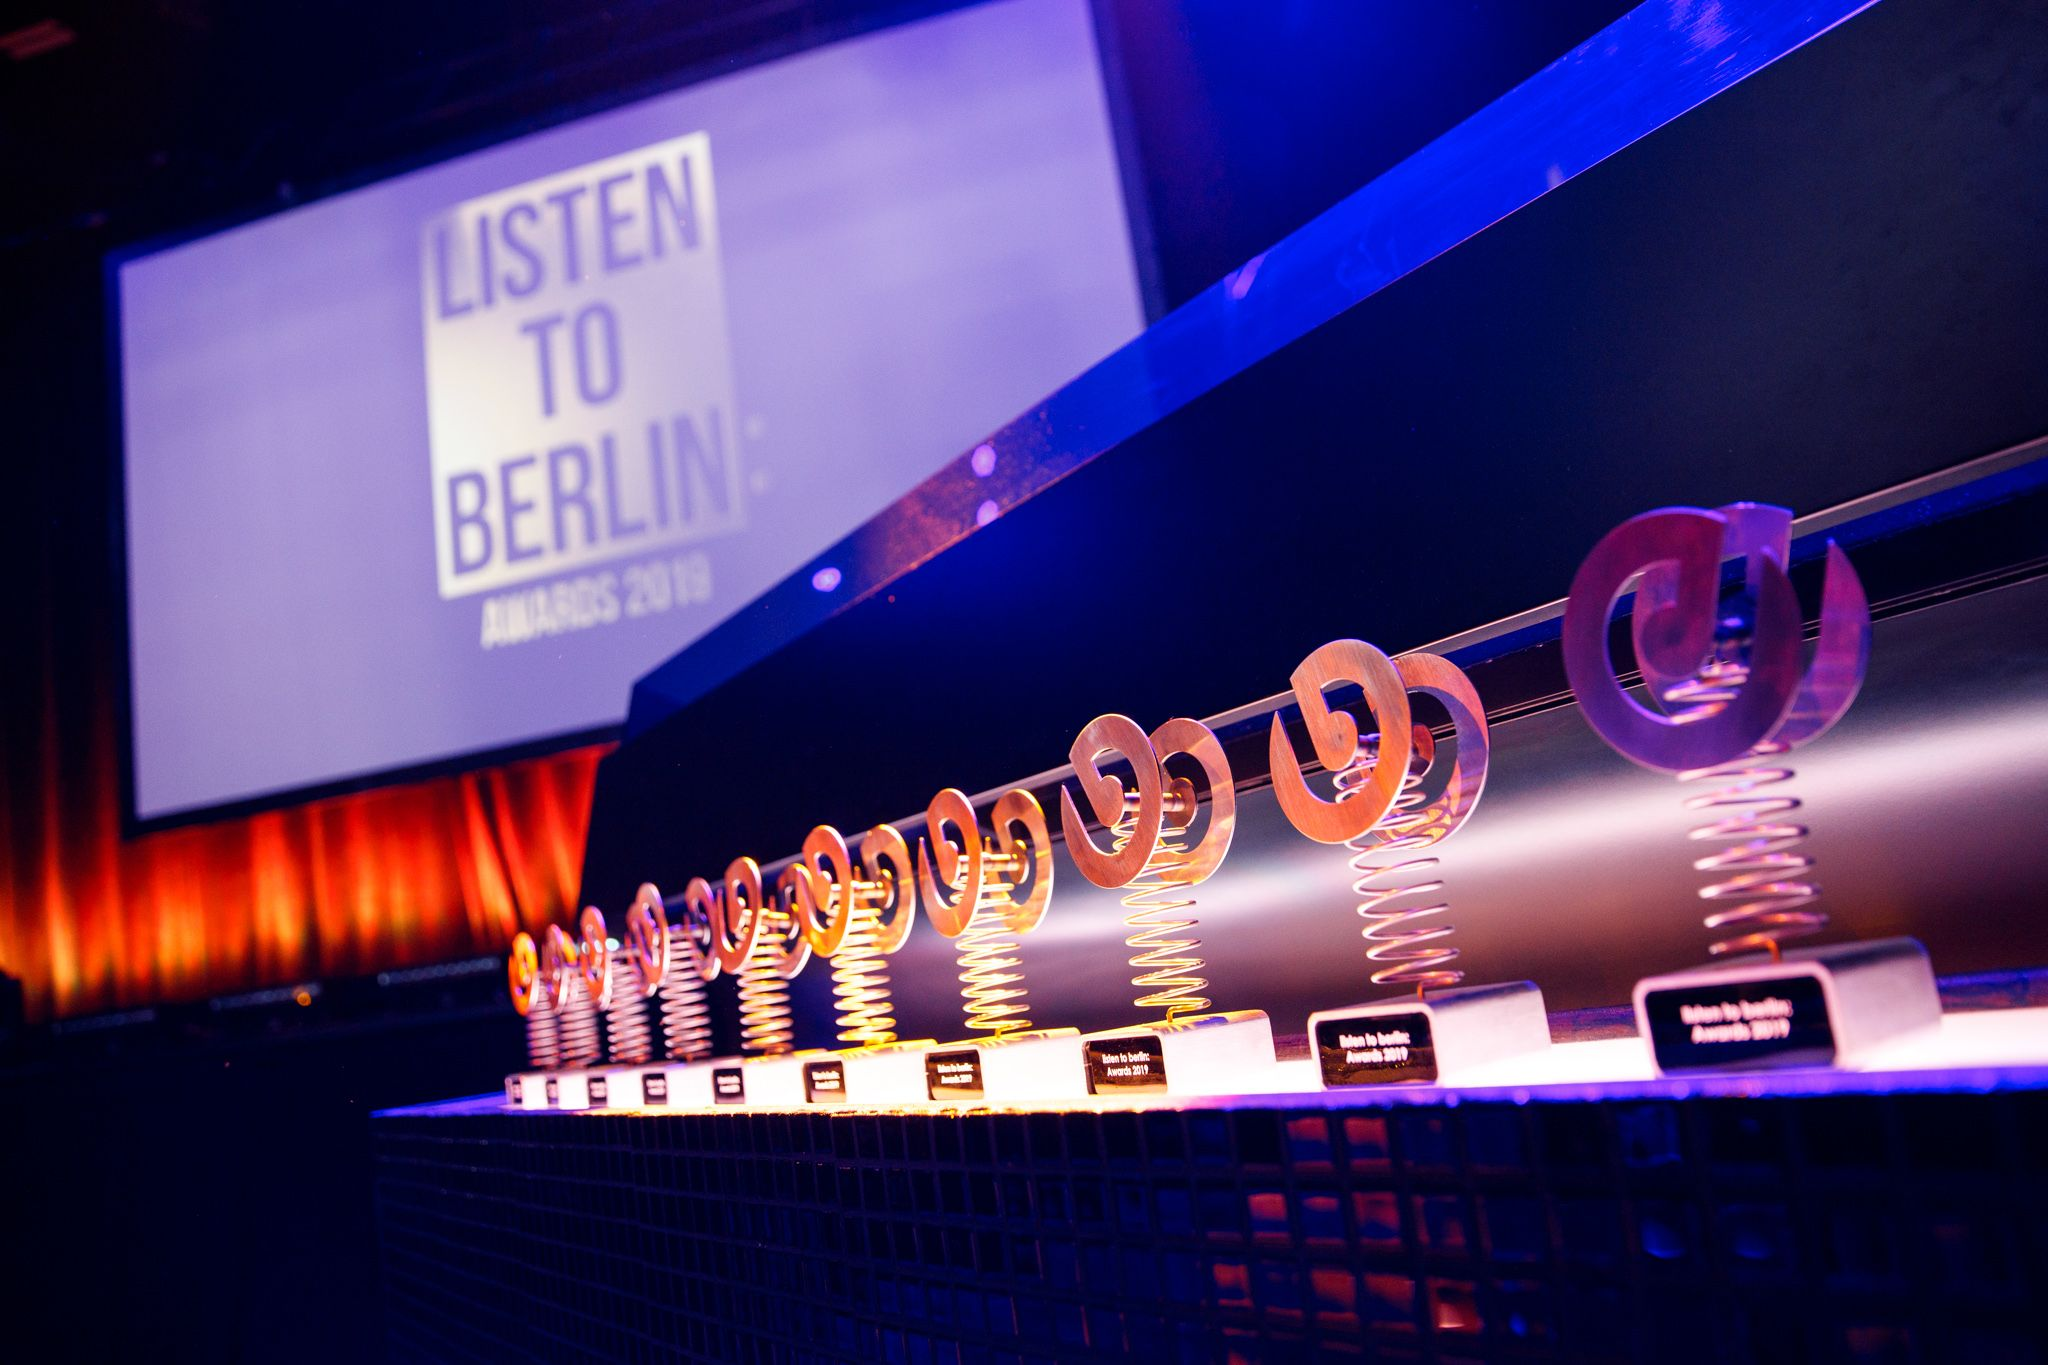 listen to berlin: Awards 2020 – We're awarding the most influential artists and key figures in Berlin's music scene